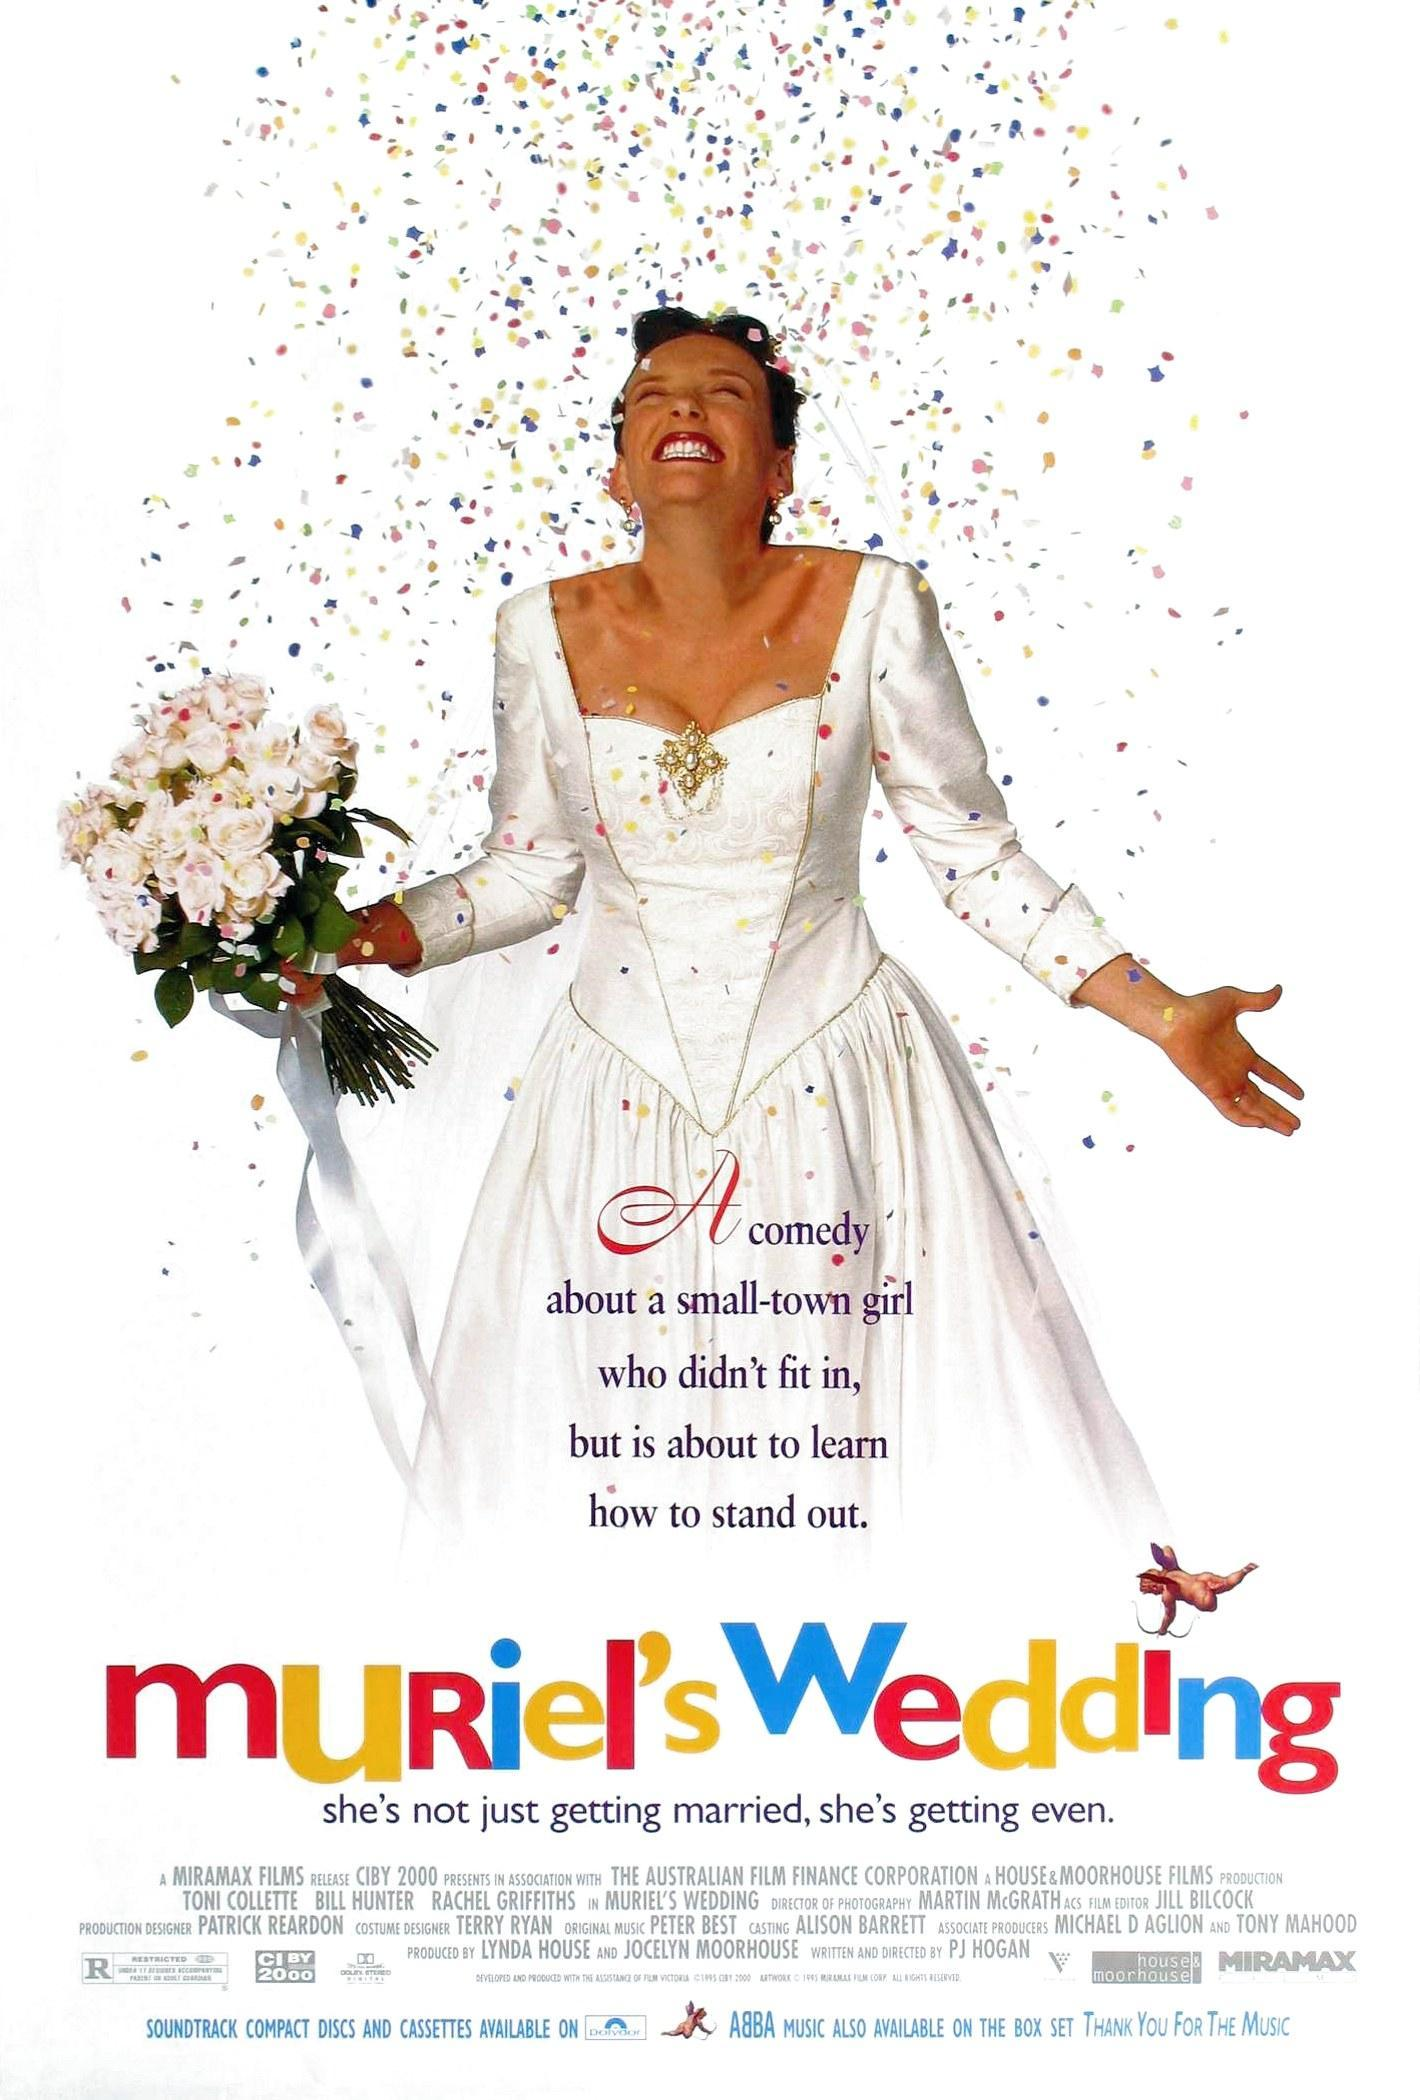 an analysis of muriels motivation of getting married in the movie muriels wedding